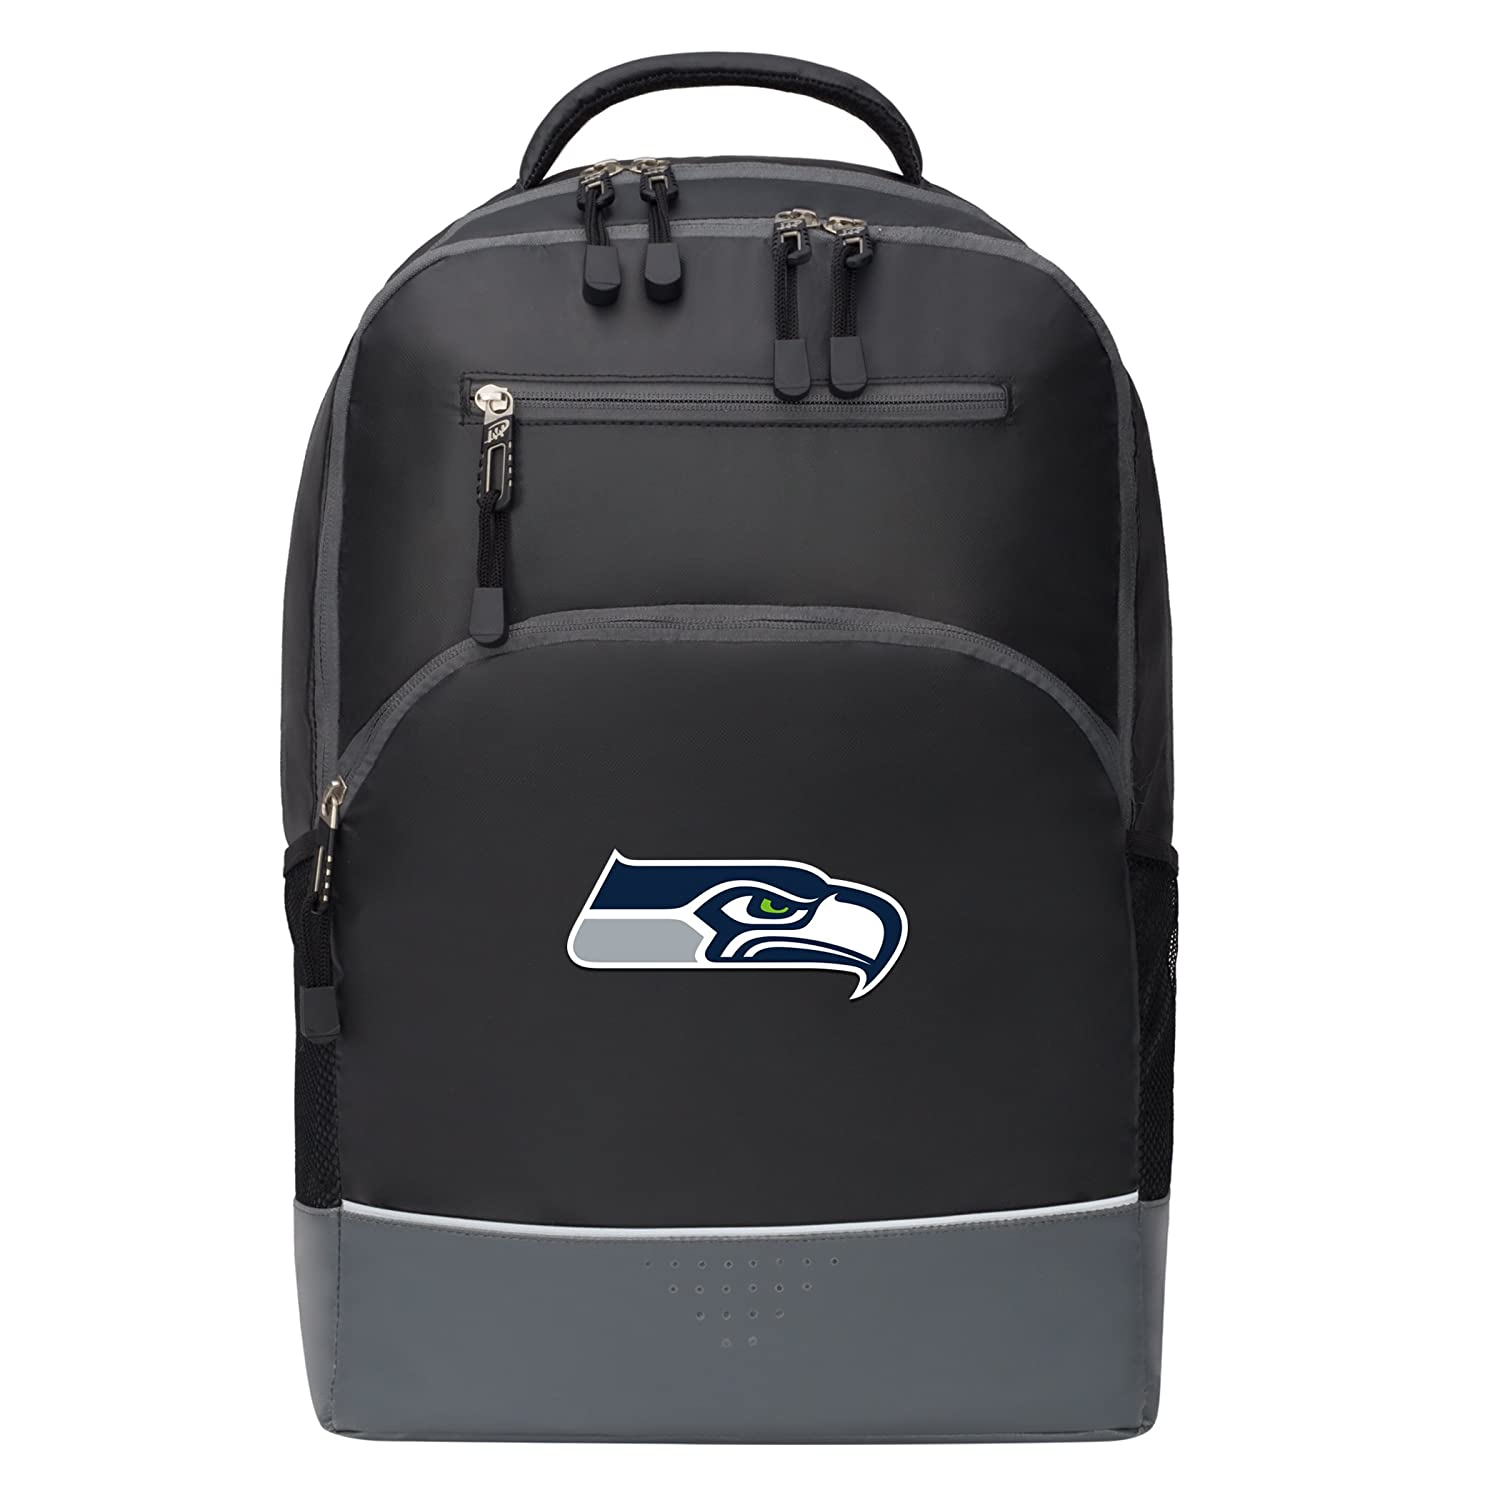 The Northwest会社Officially Licensed NFL Allianceバックパック B07DGRXF9W   Seattle Seahawks